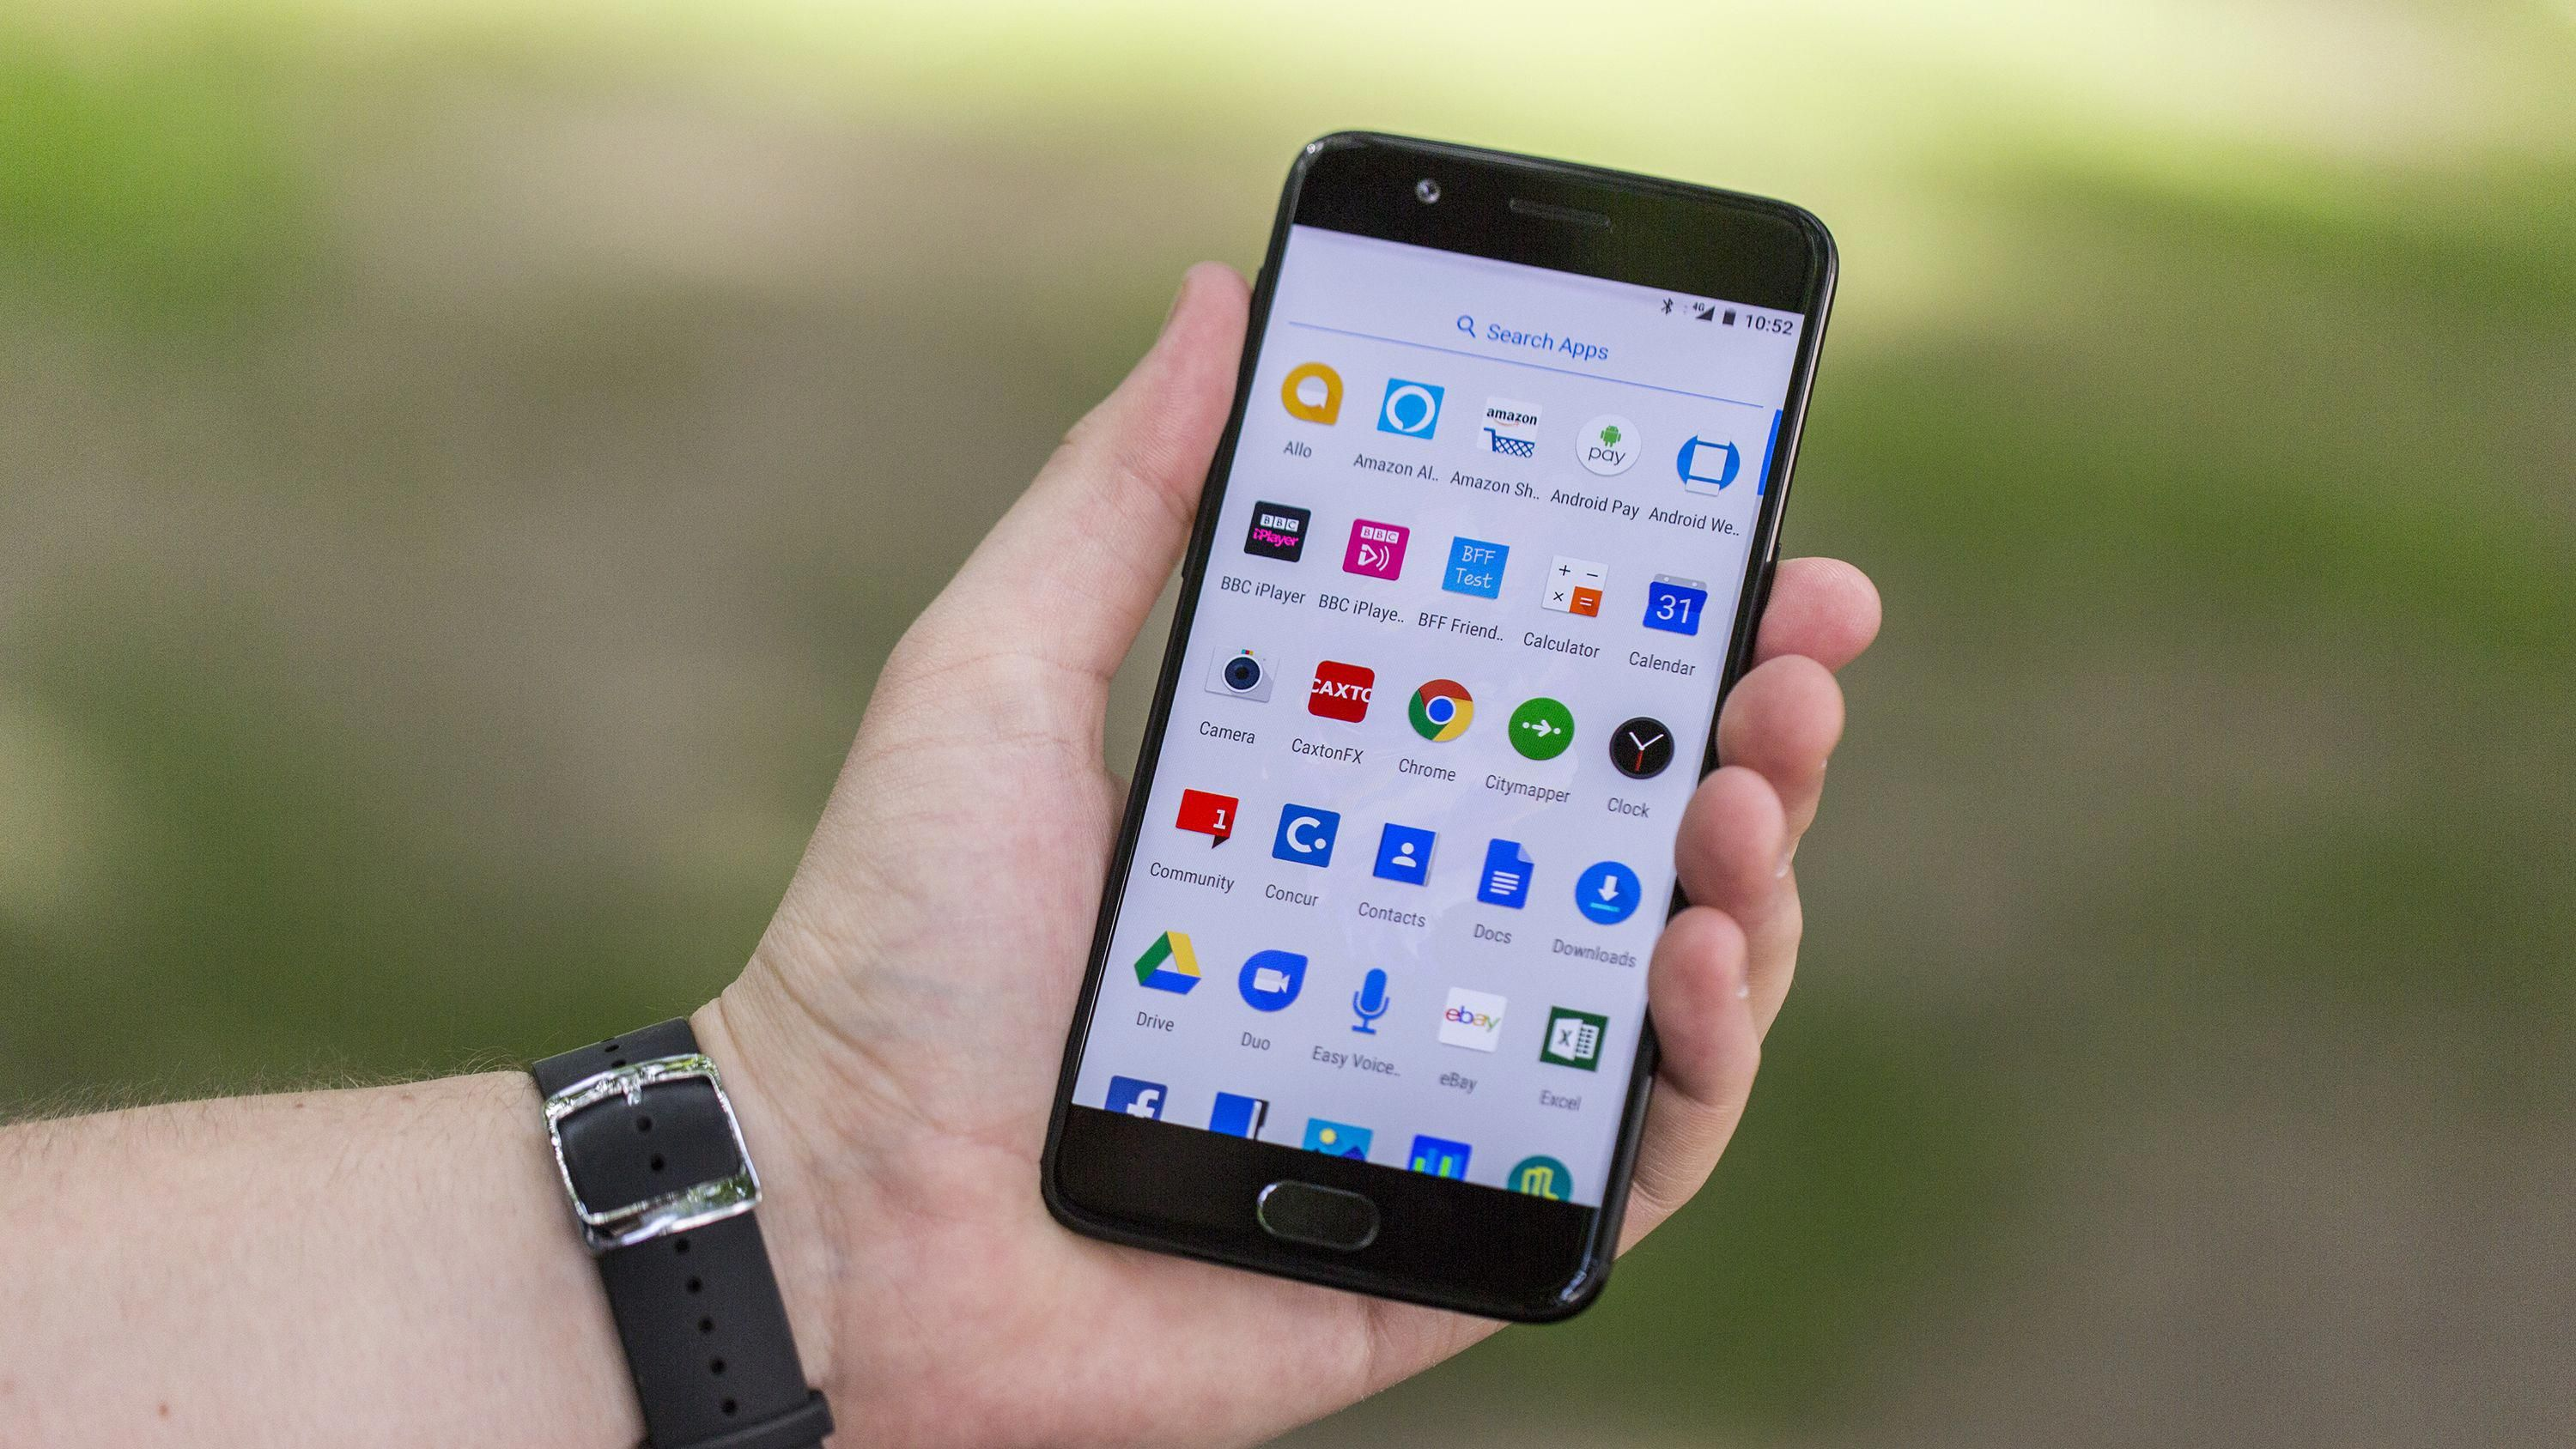 Oneplus 5t Review T Mobile Phones Buy Cell Phones Online Cell Phone Deals